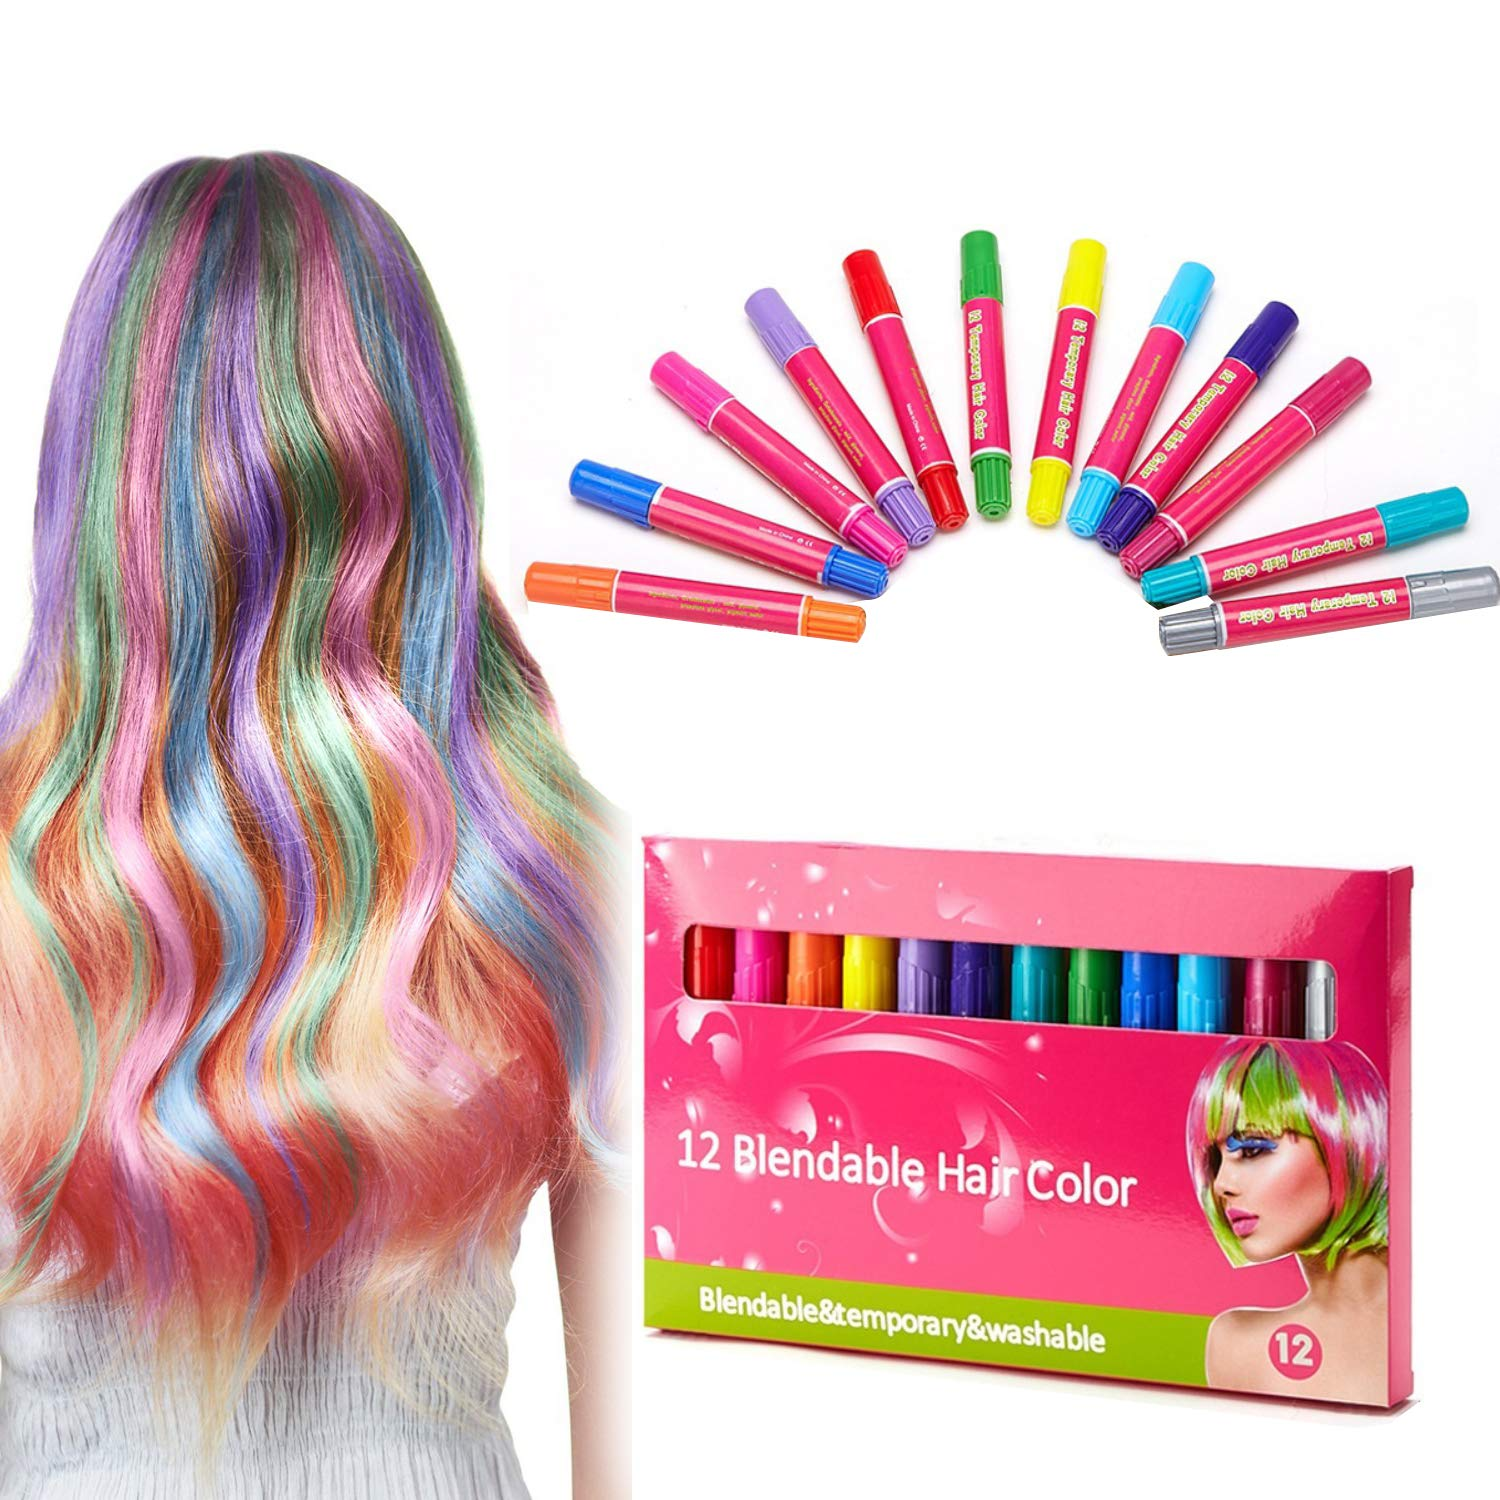 Spdoo Hair Charks Gift Set Kids, 12 Colors One-time Hair Dye Stick, Easy to Wash Out No Mess, Best Birthday Party Present Gifts Girls Boys